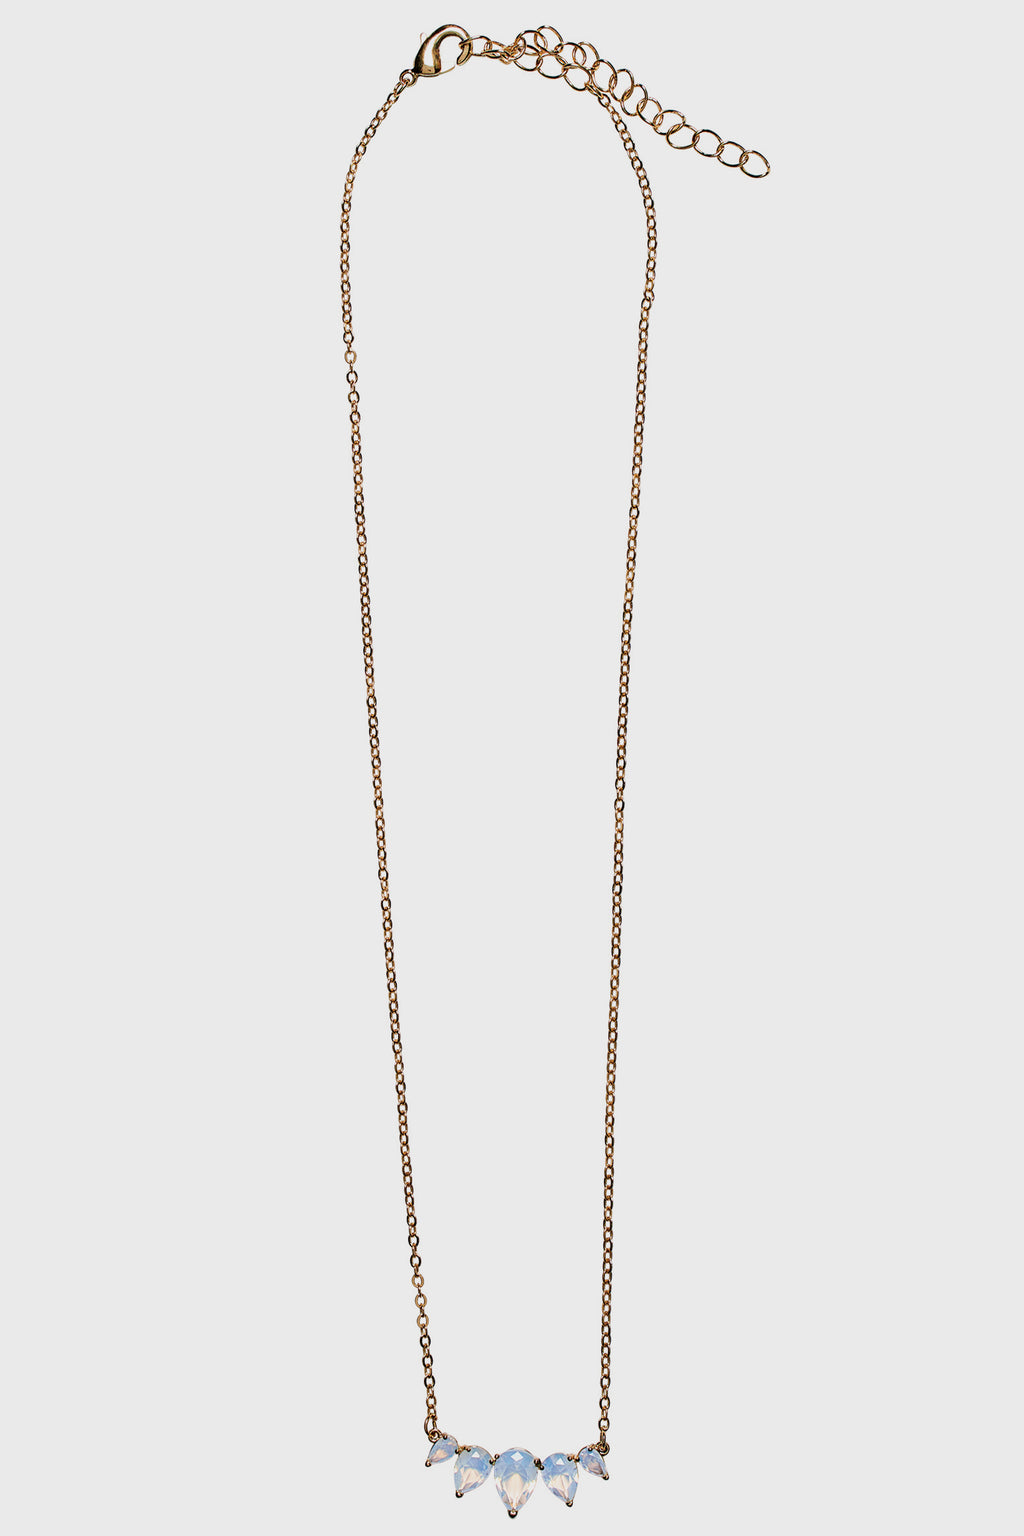 Dainty chain with white faux opal stones (BSJ3532)- Final Sale-NECKLACE-BaySky